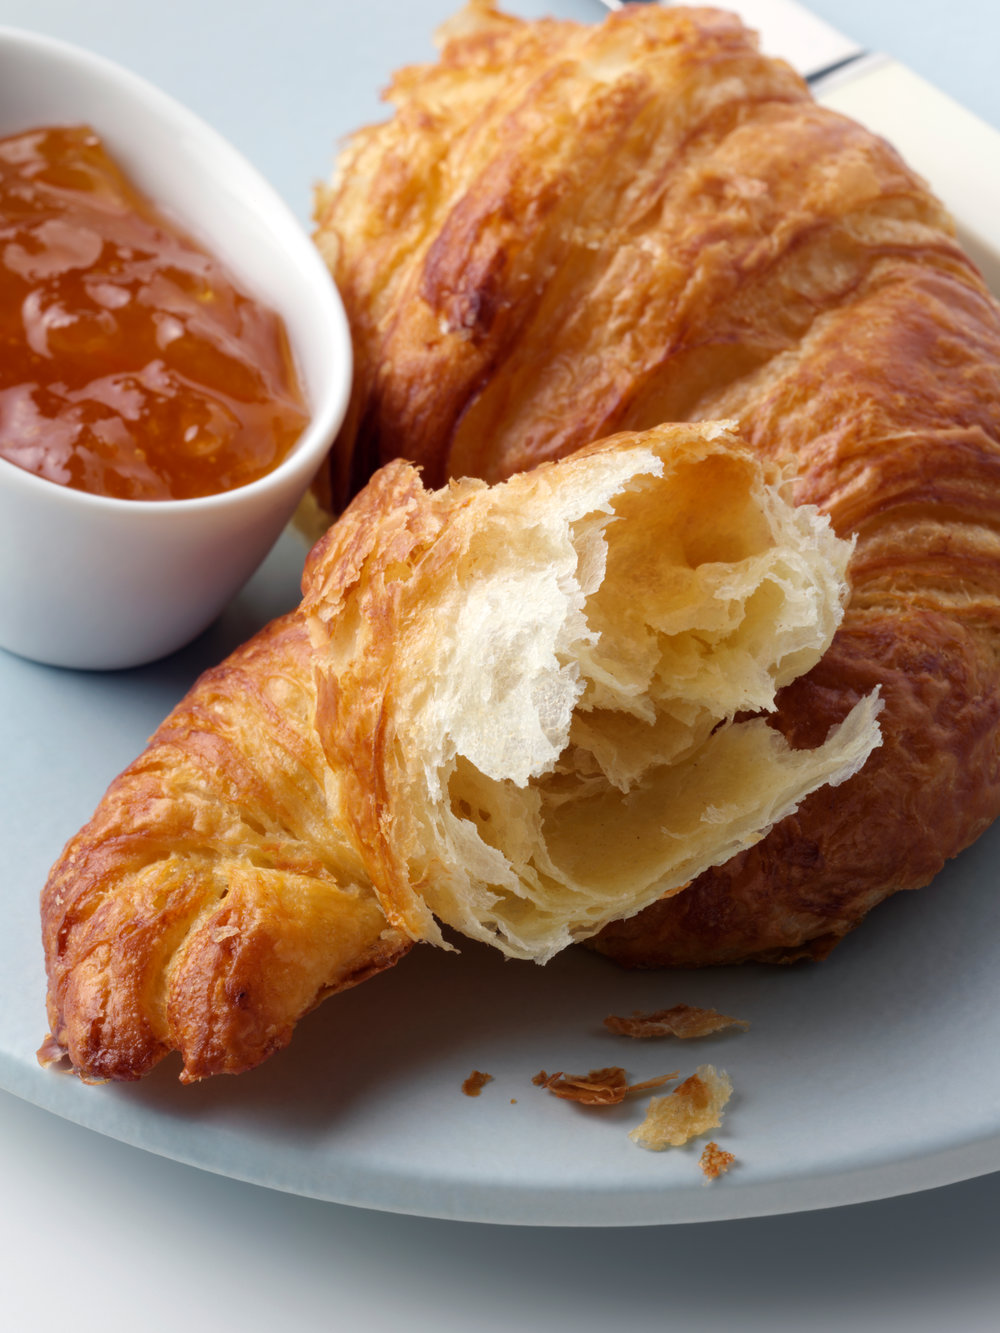 Croissant and confiture